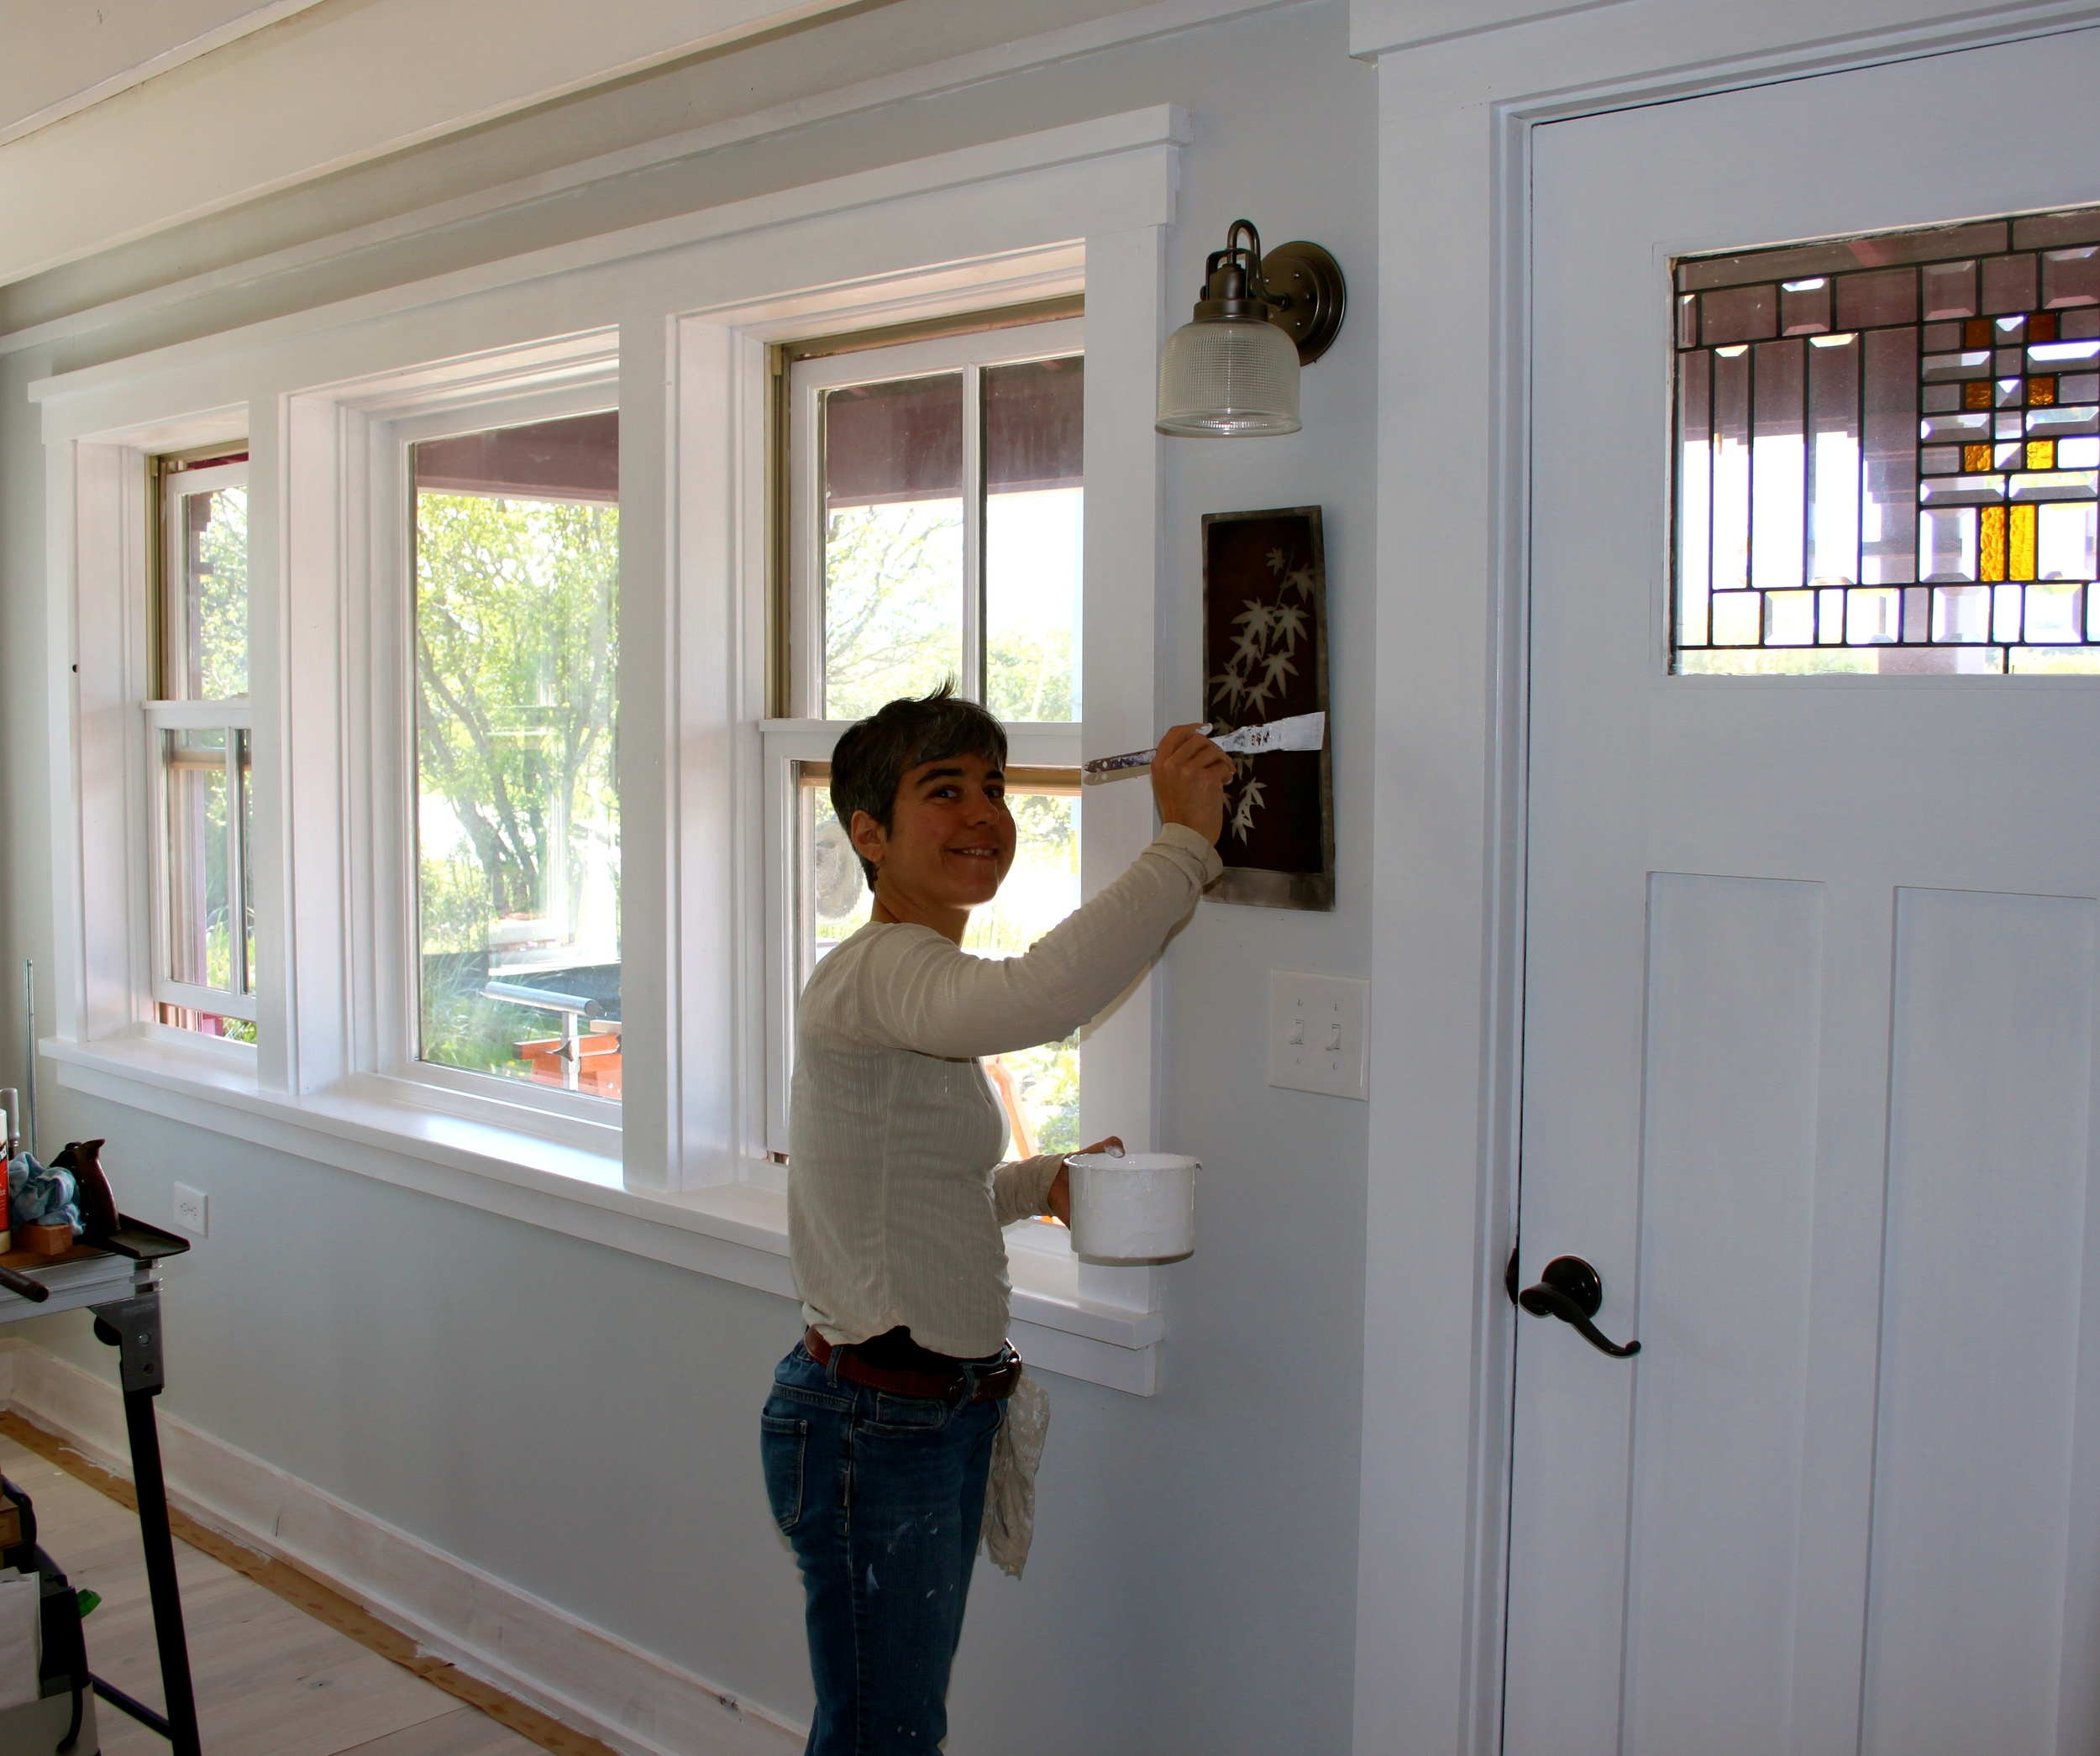 Brush painting site-built casings and trim adds a vernacular charm.